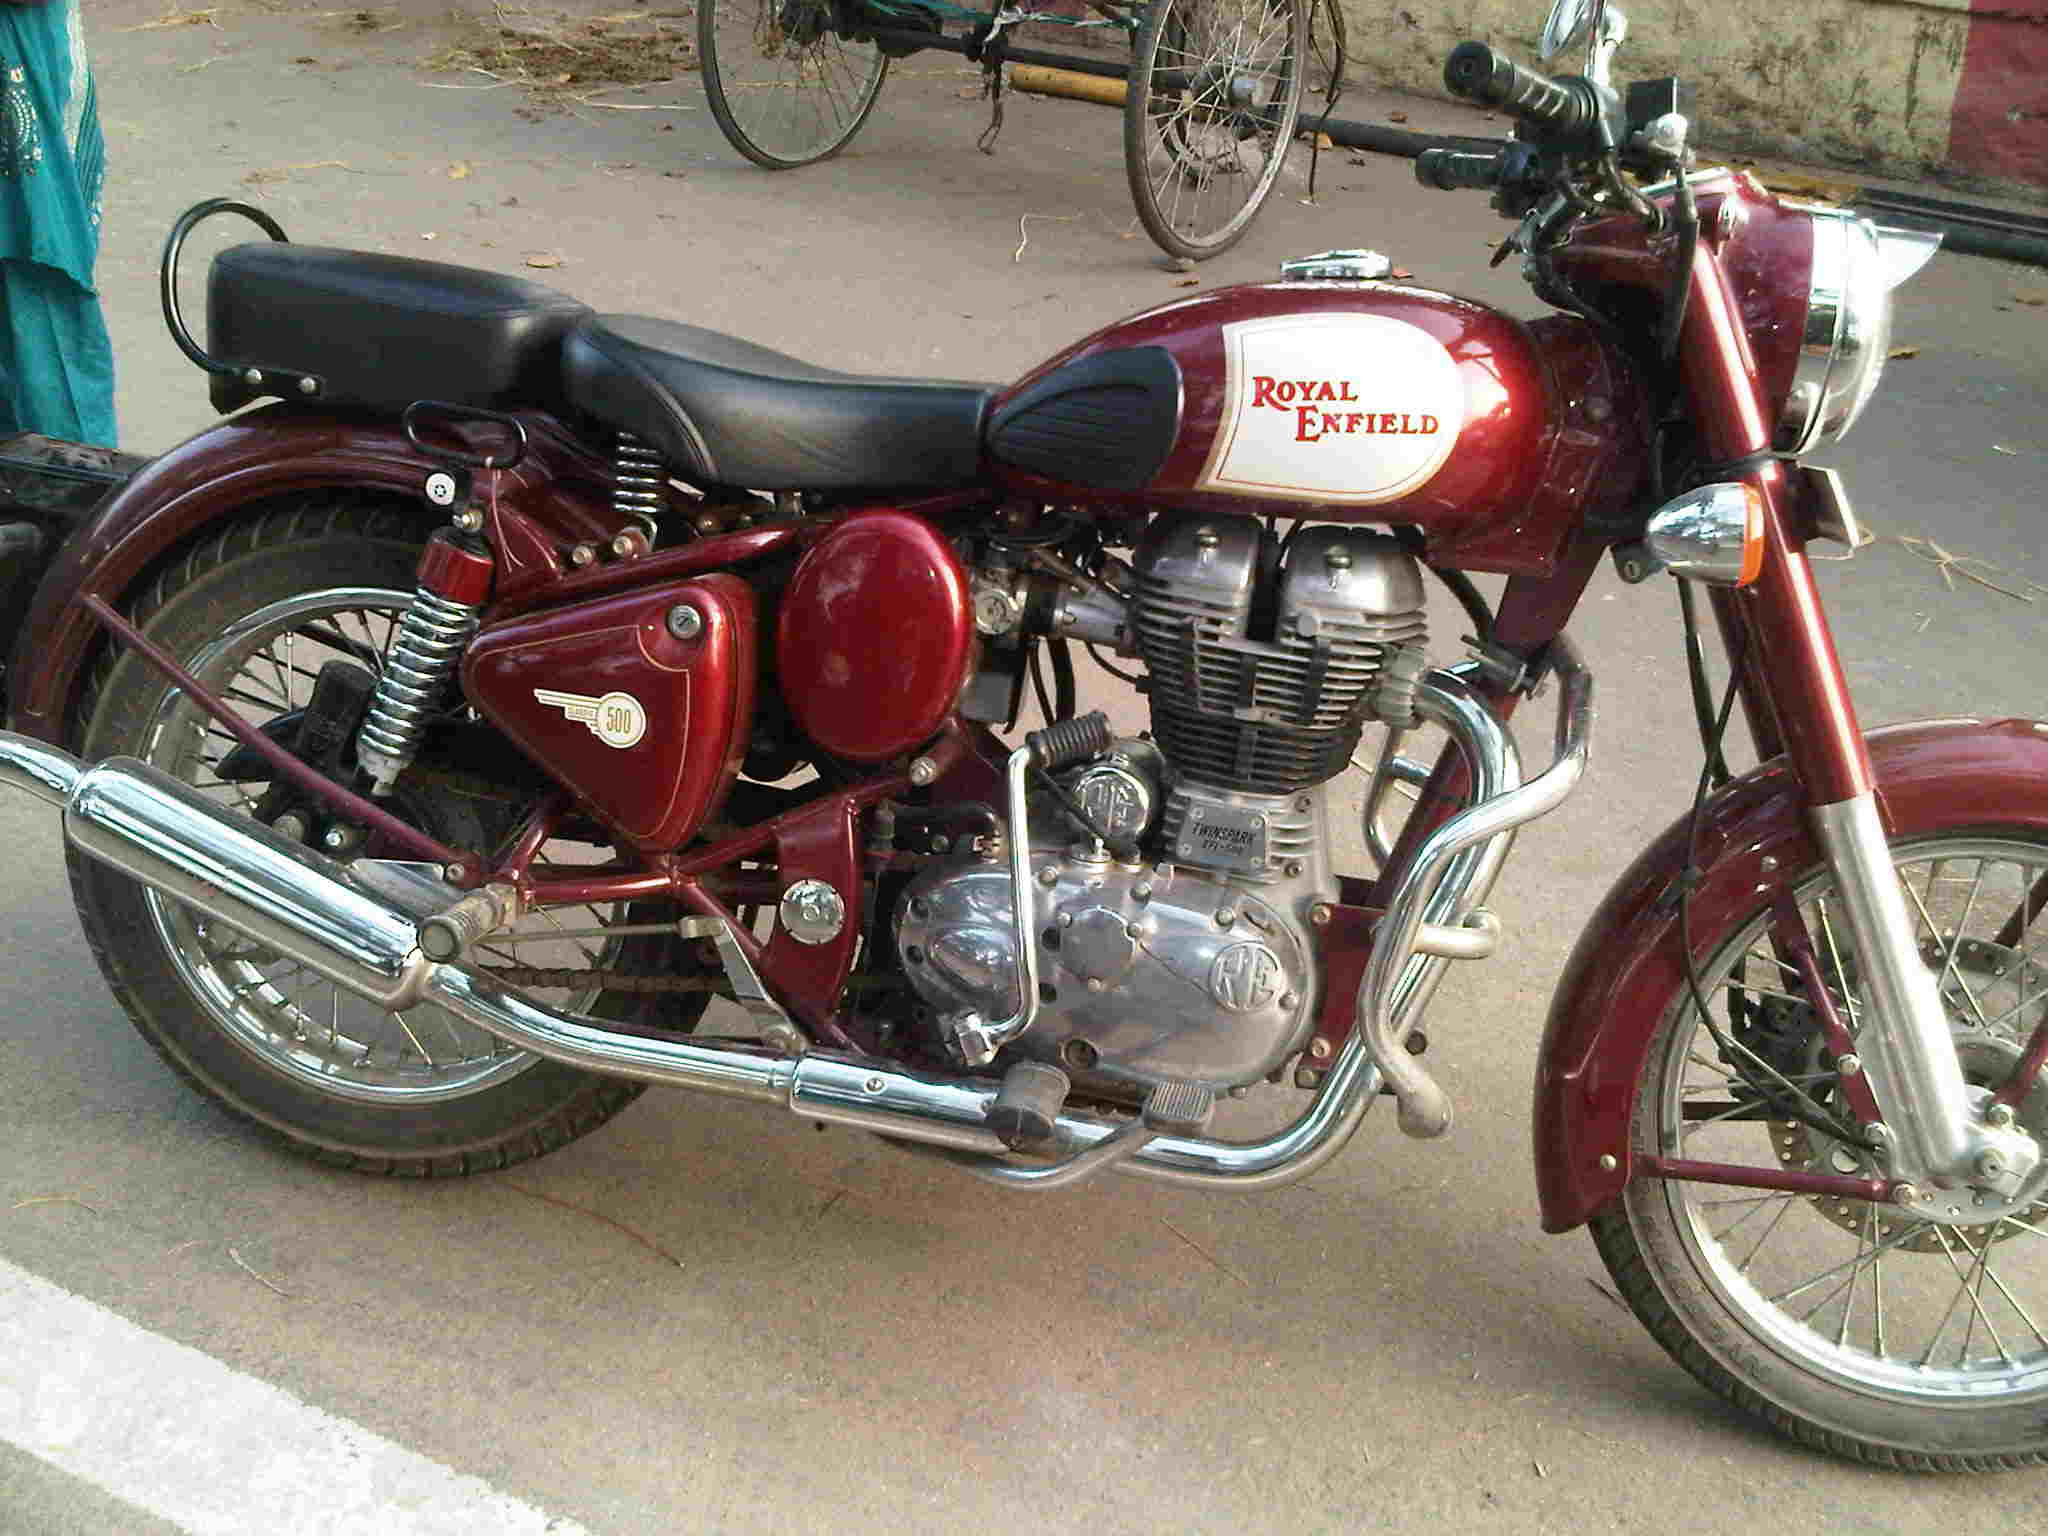 2010 Enfield Classic 500 #1